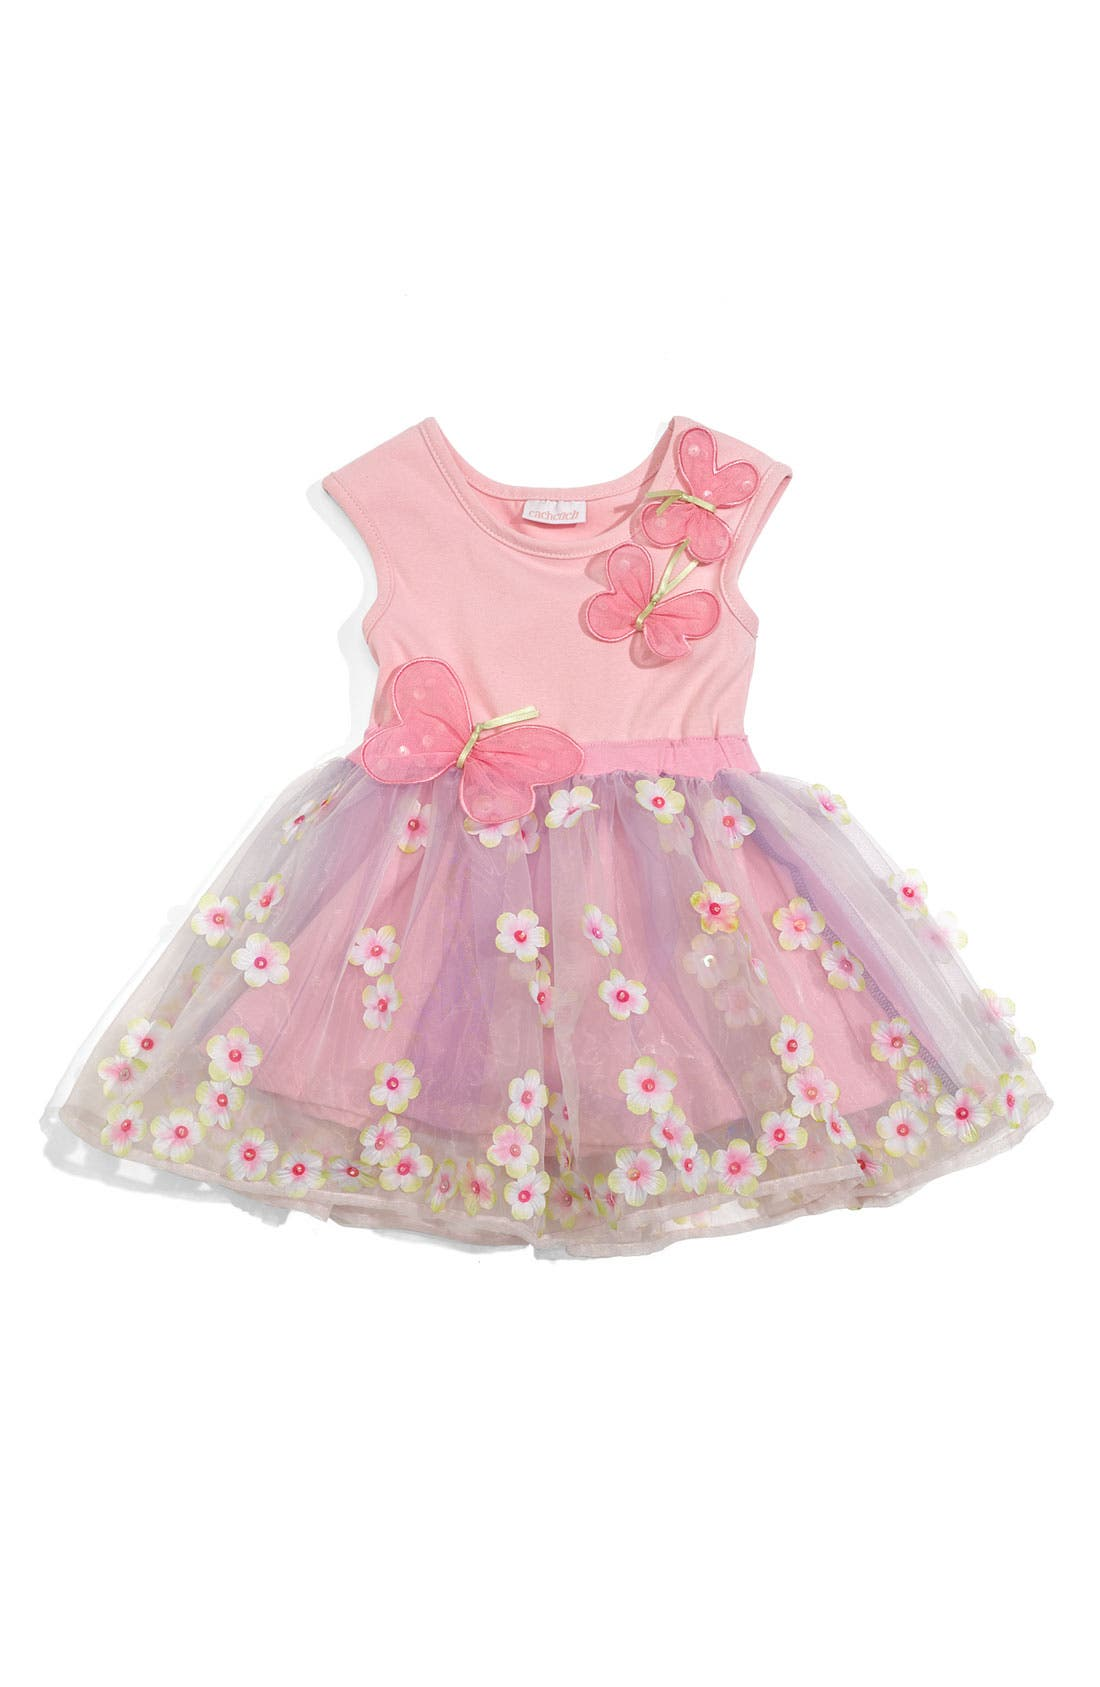 Main Image - CachCach 'Butterfly' Dress (Toddler)